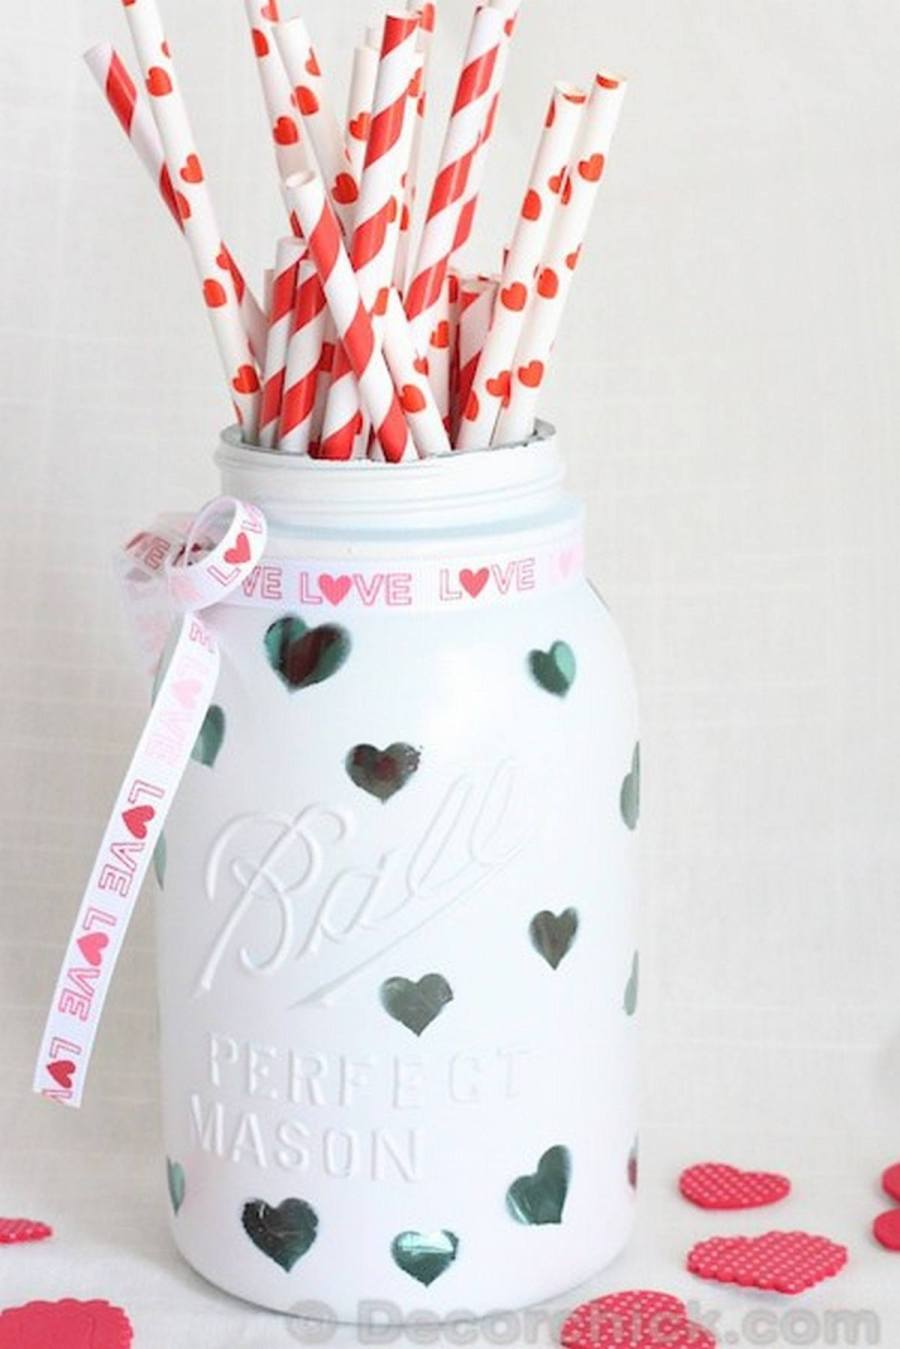 February 14 will be here before you know it, so start crafting now! These cute ideas for Valentine's Day crafts and DIY gifts will set your heart on fire.